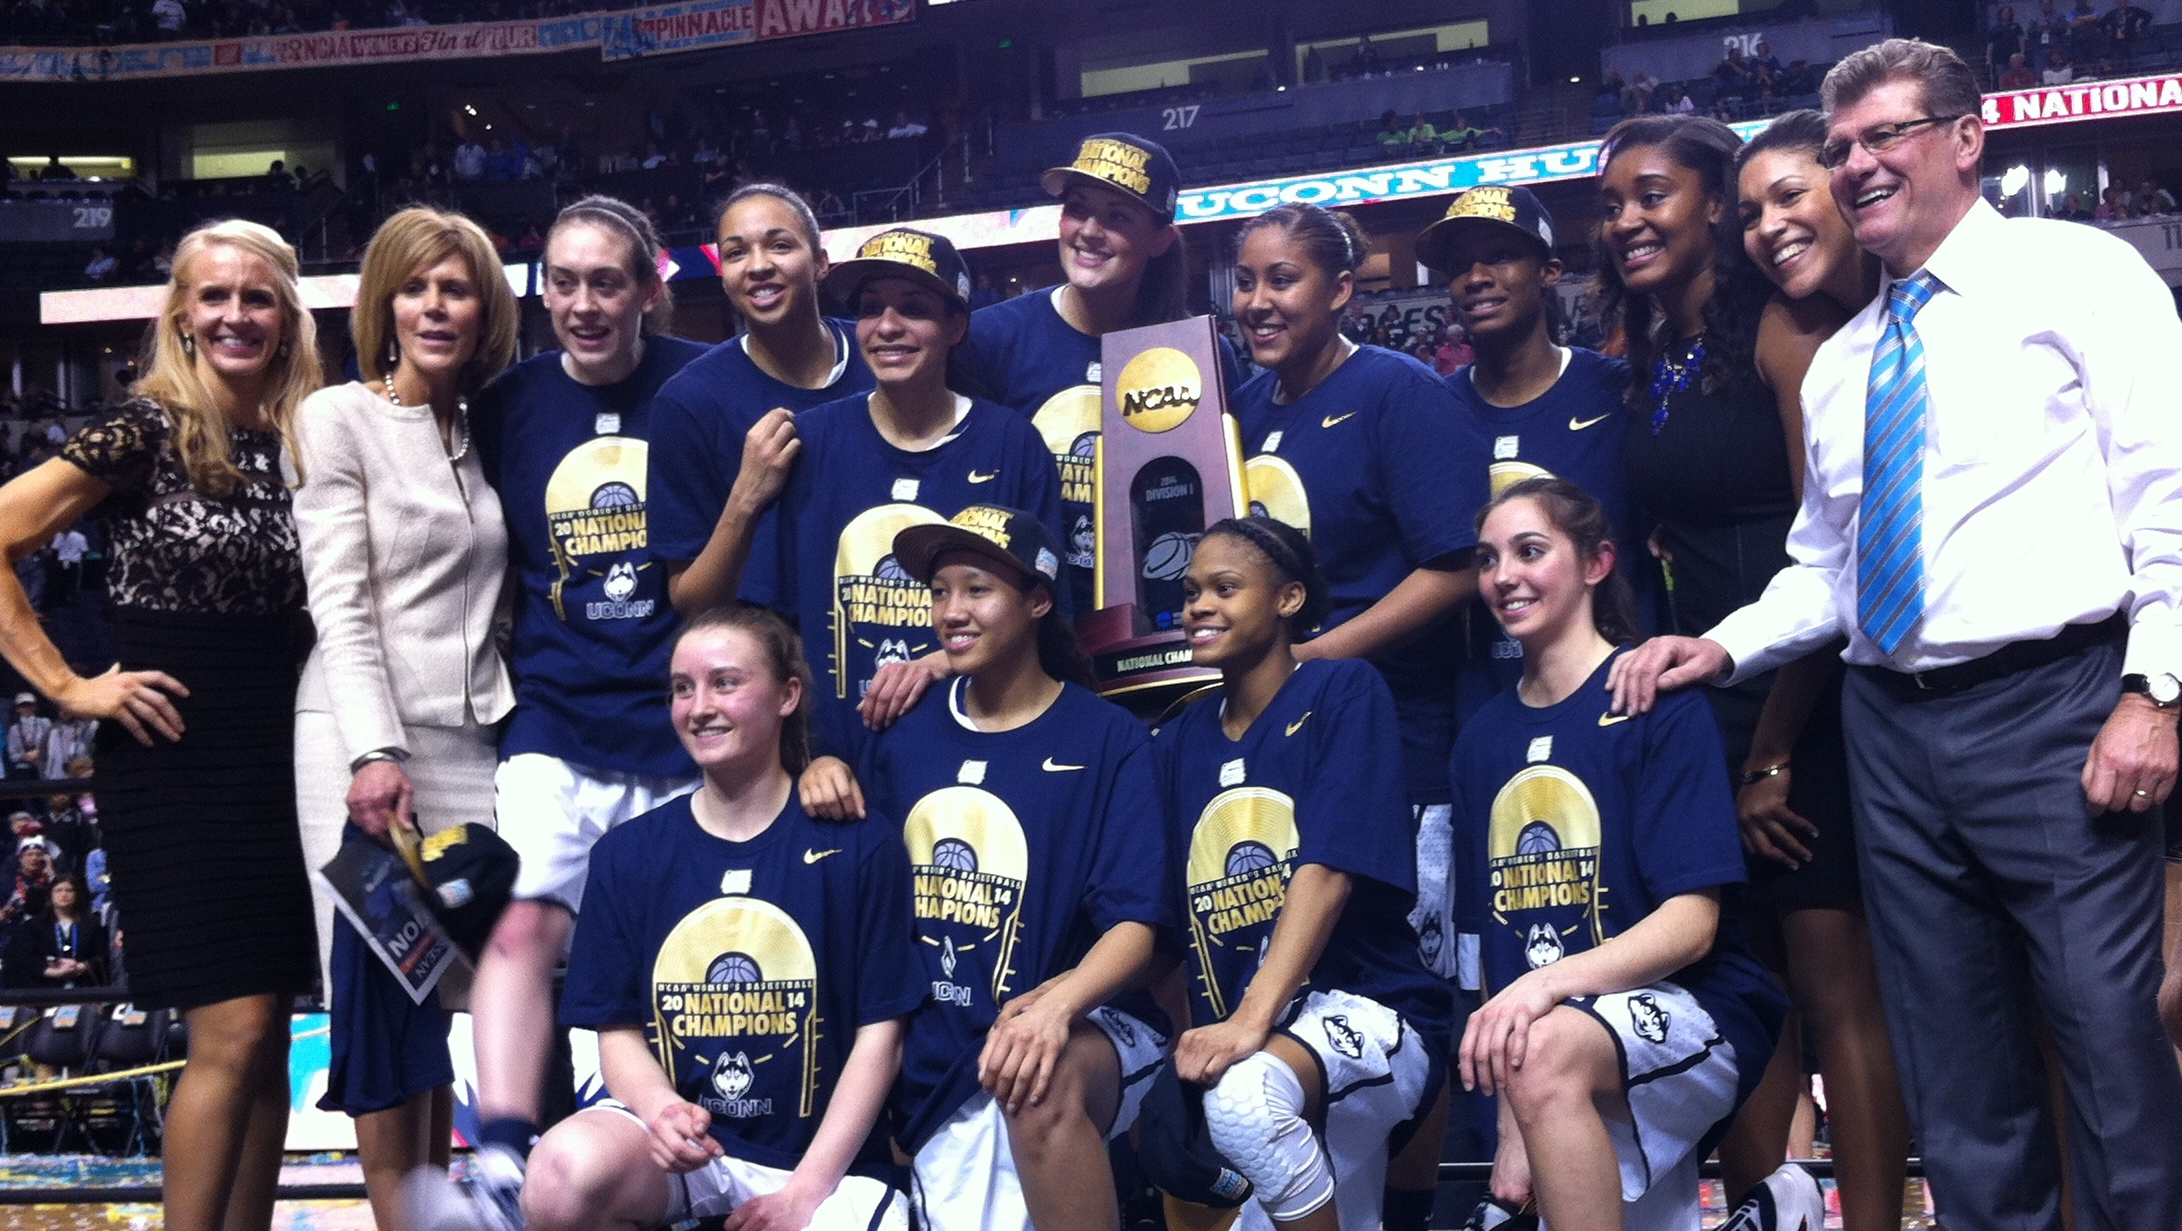 No more pursuit, perfection achieved. UConn defeats Notre Dame 79-58 in championship to finish 40-0